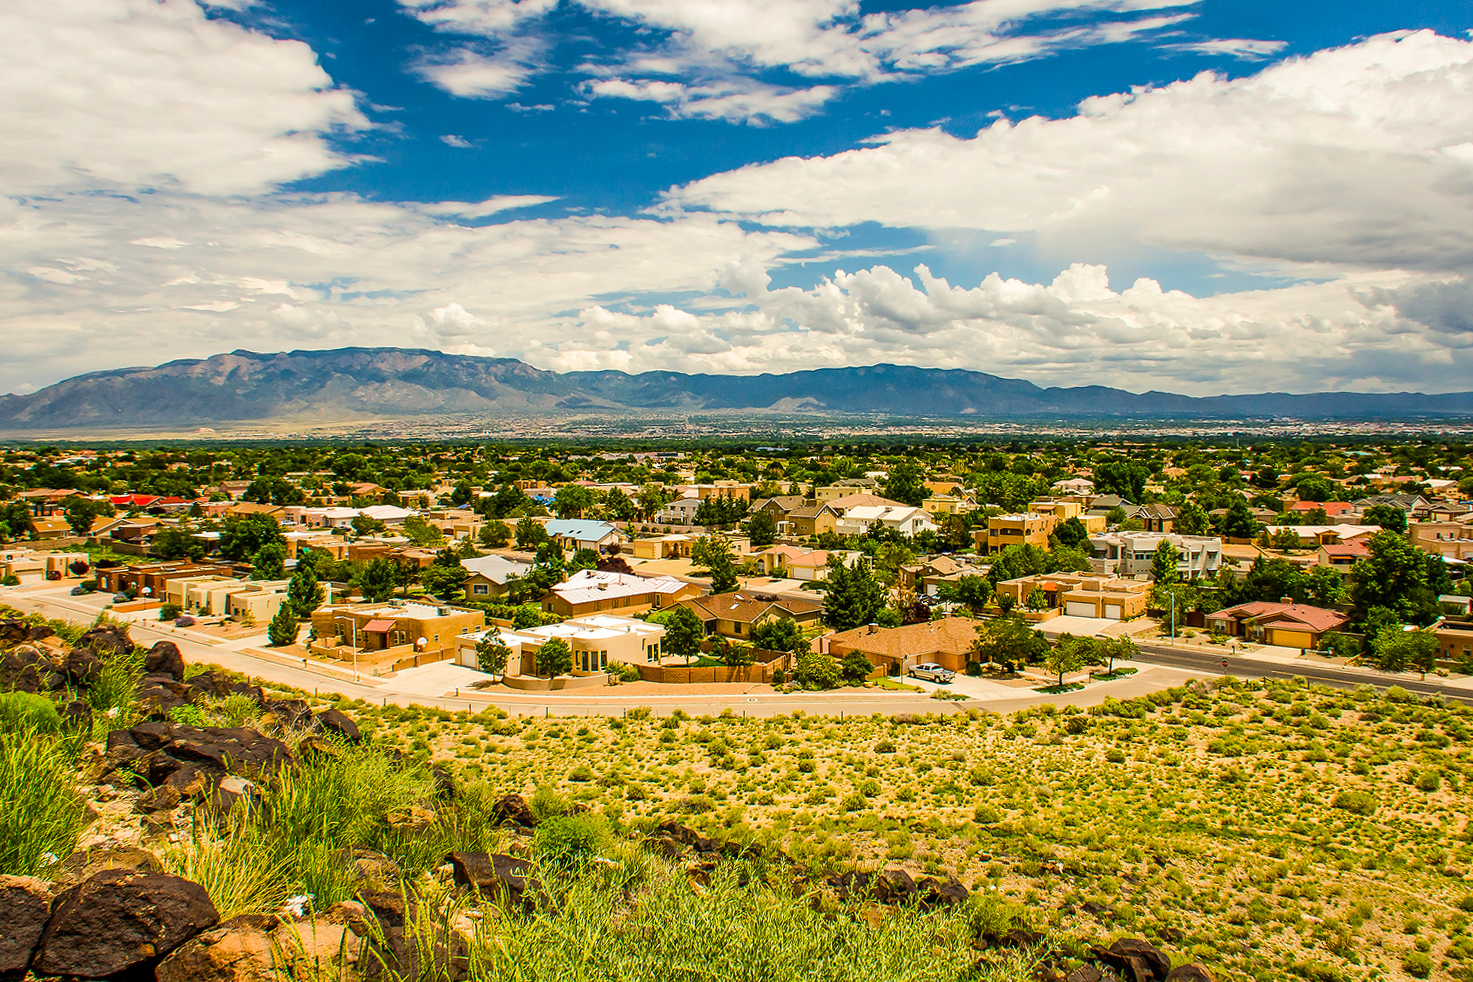 While not a major market for retirement, Albuquerque, NM is a hot spot for active adults.